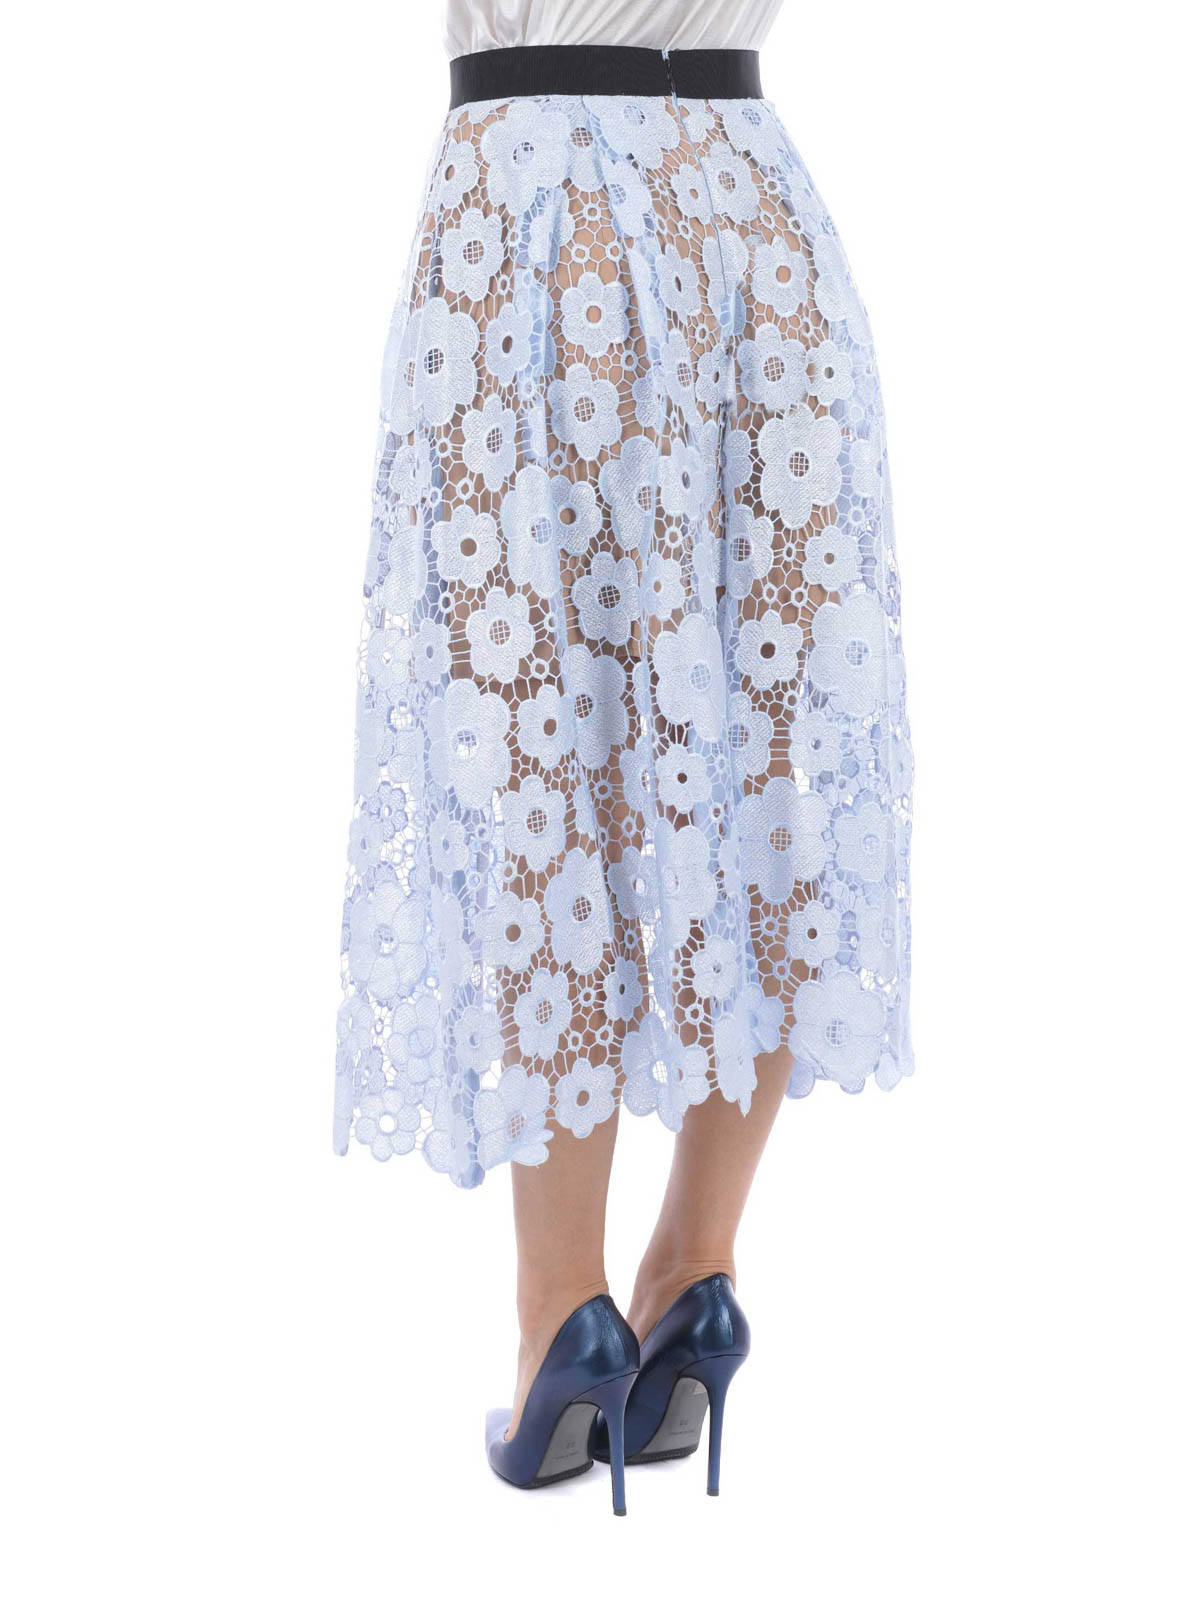 edfcfca23a015 Self Portrait - FLORAL LACE SKIRT - Knee length skirts & Midi - SP10 ...